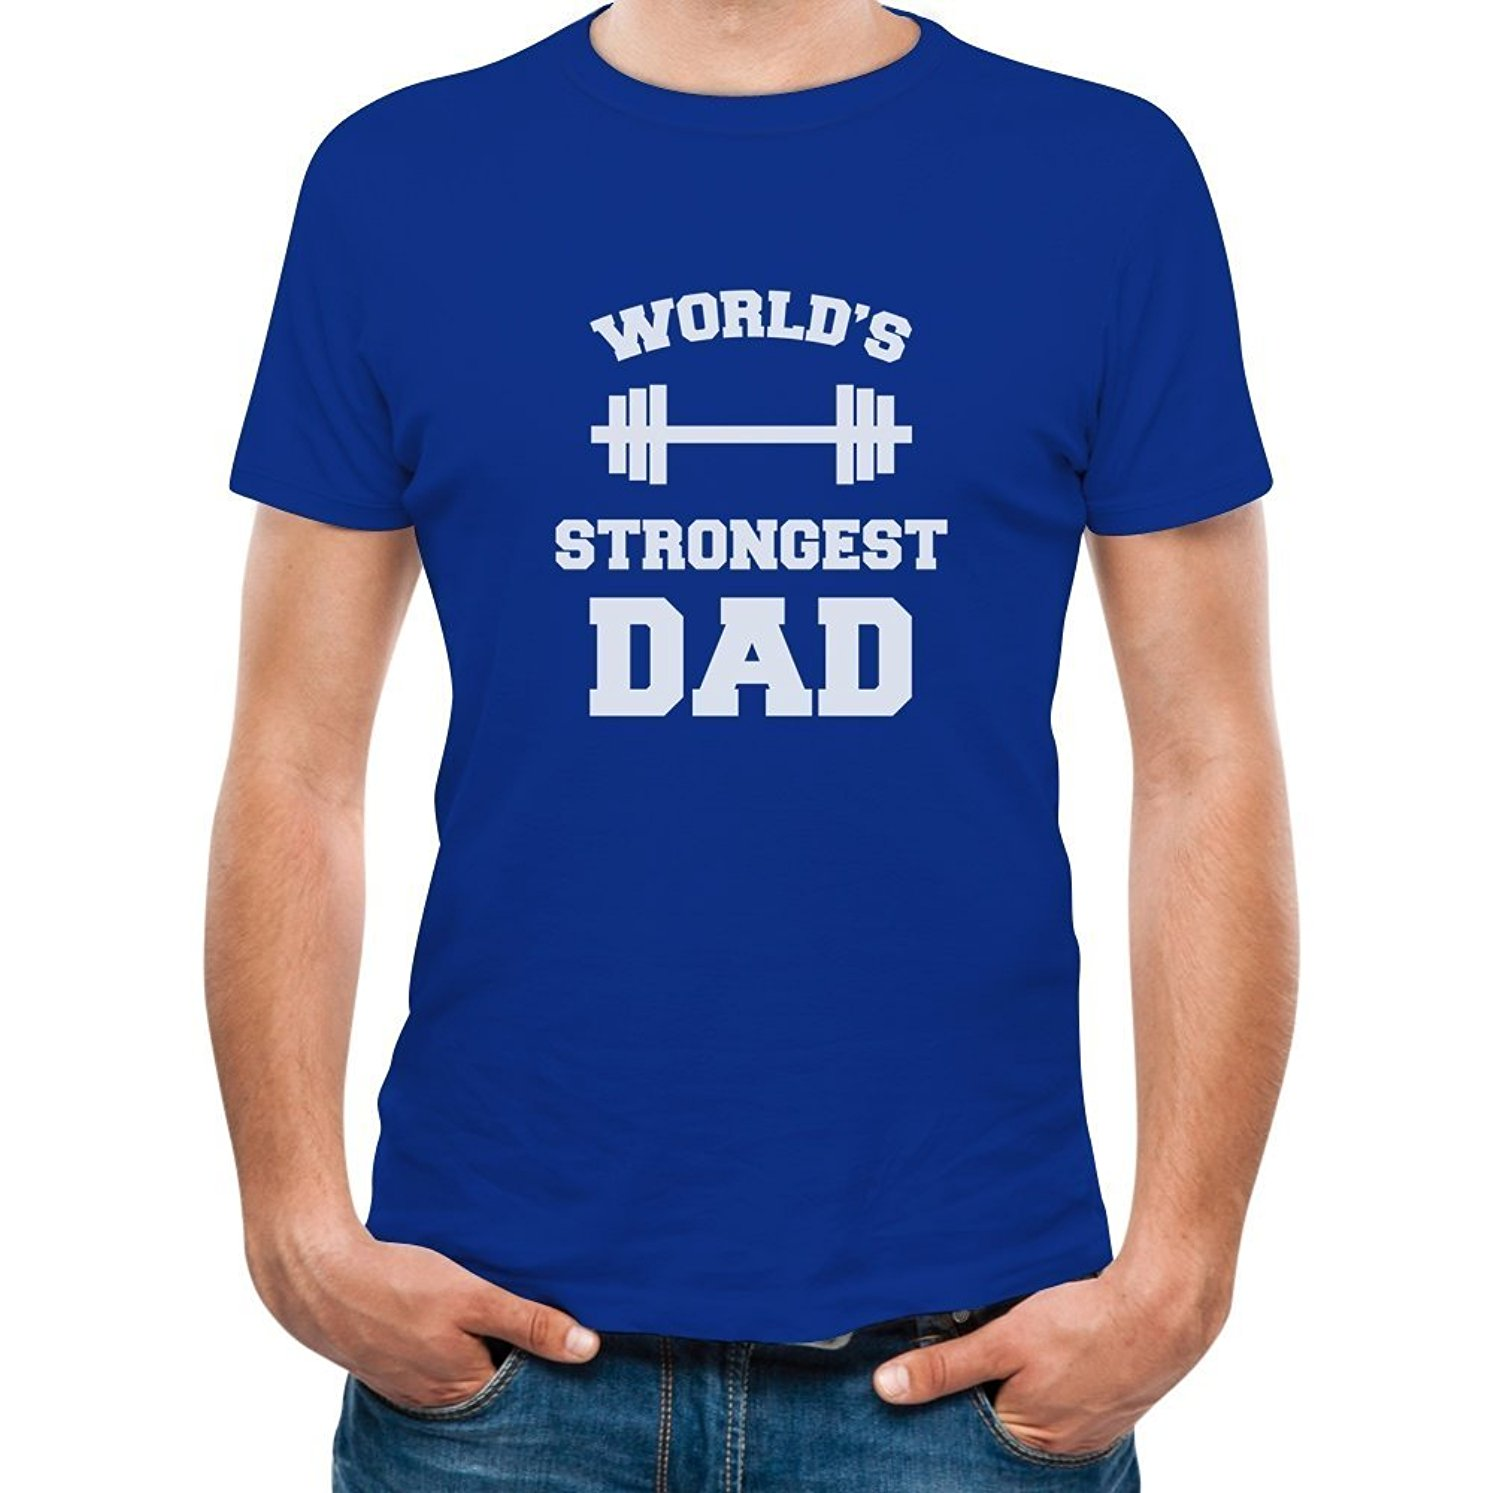 Printed tee shirt design Worlds Strongest Dad Gift Idea for Fathers Day Cool Fathers T-Shirt Circle t shirt designers